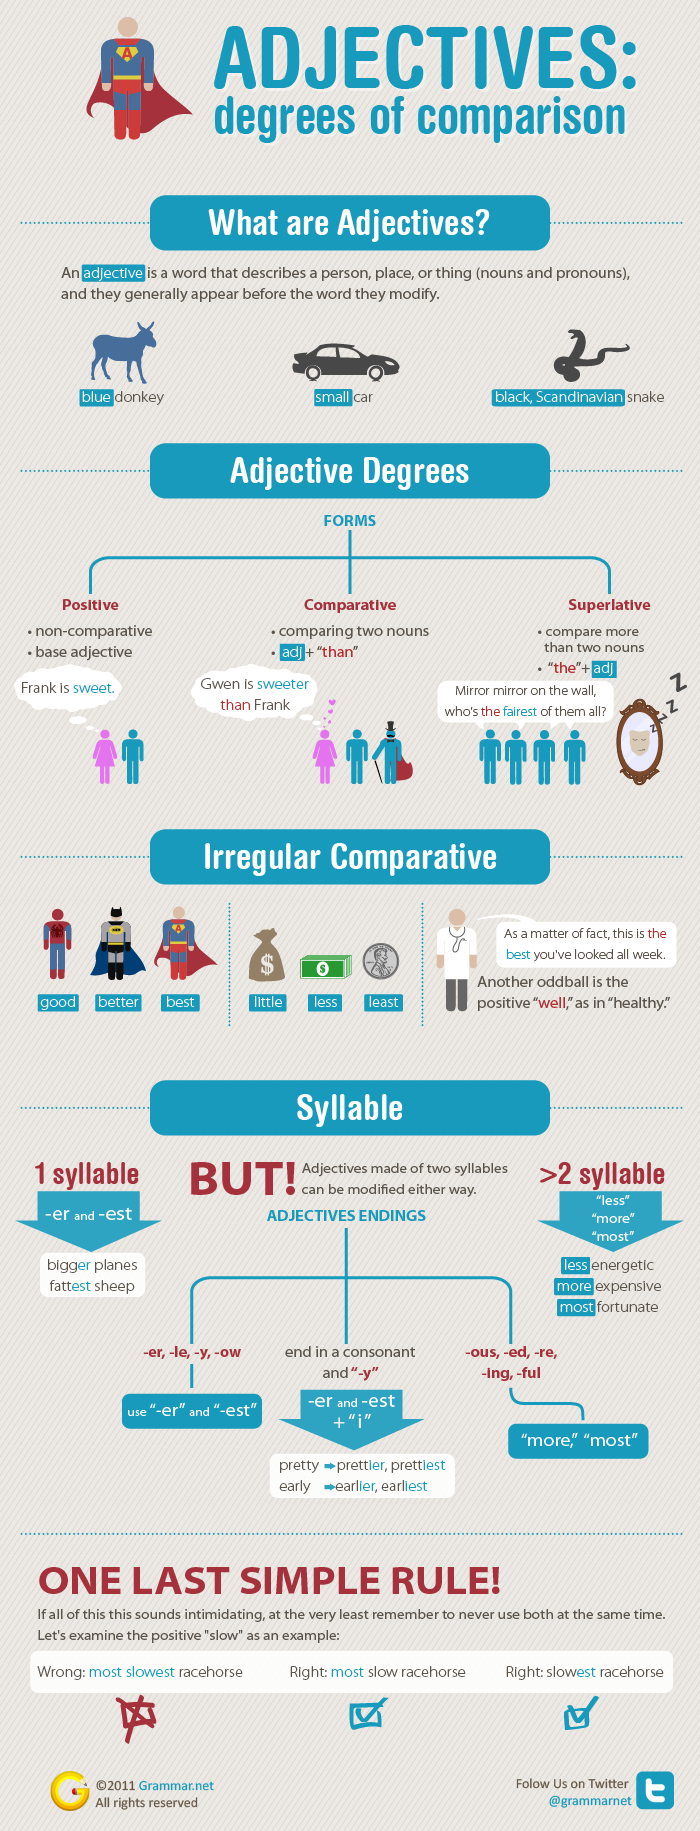 Adjectives degrees of comparison infographic